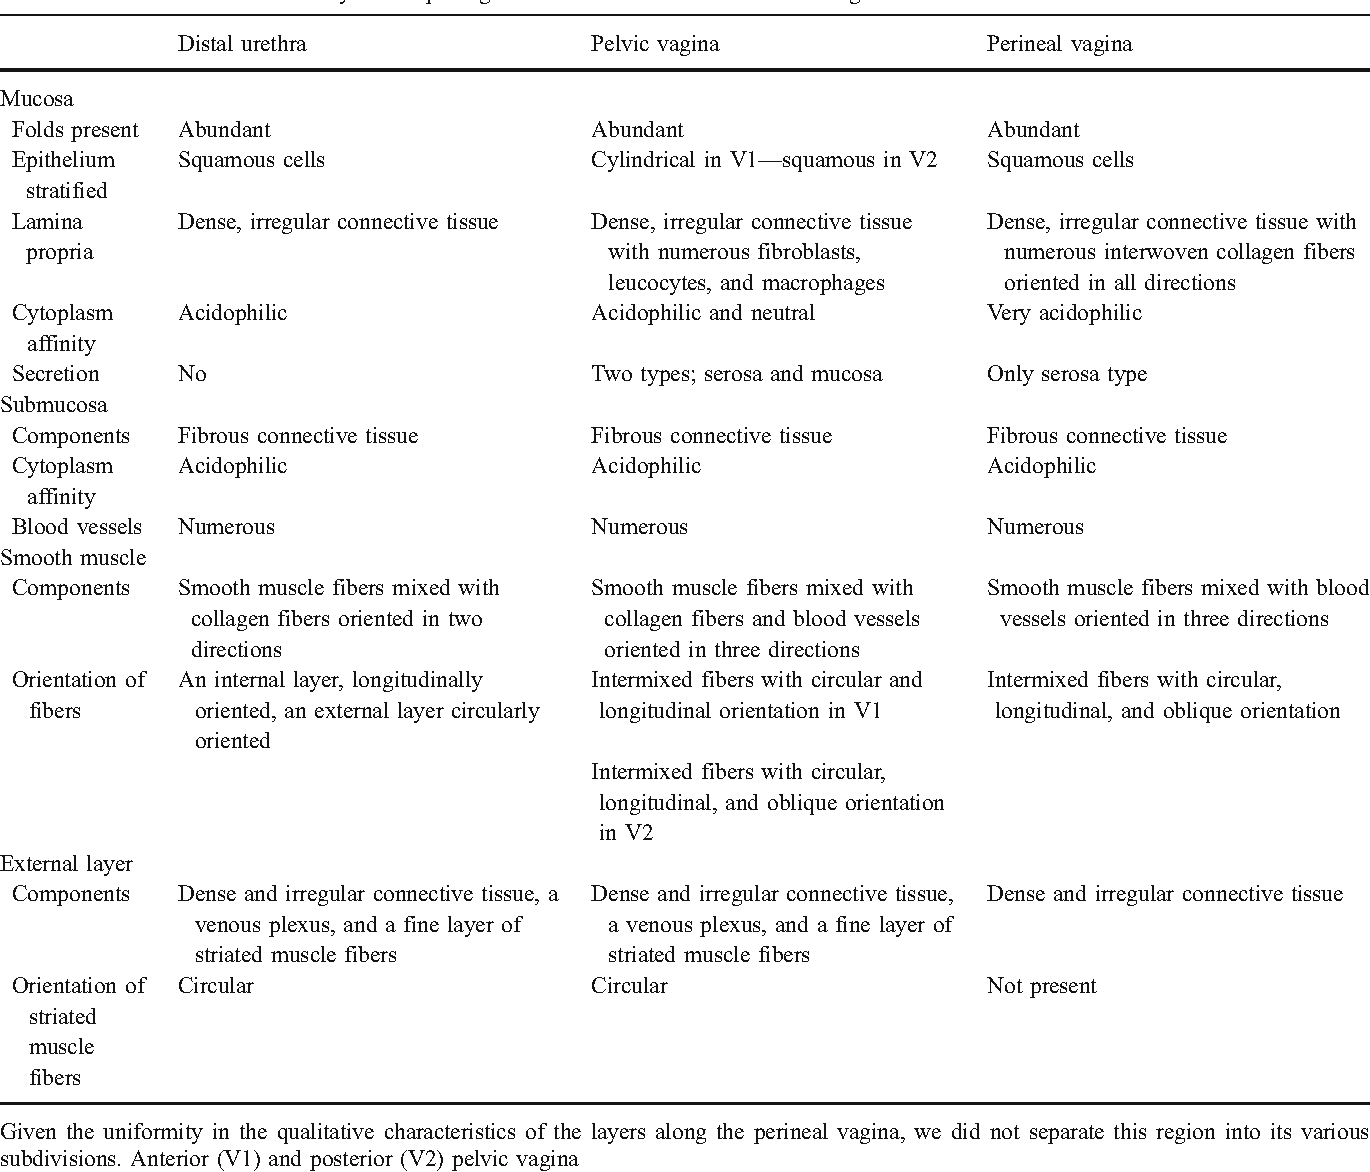 General Tissue Characteristics Of The Lower Urethral And Vaginal